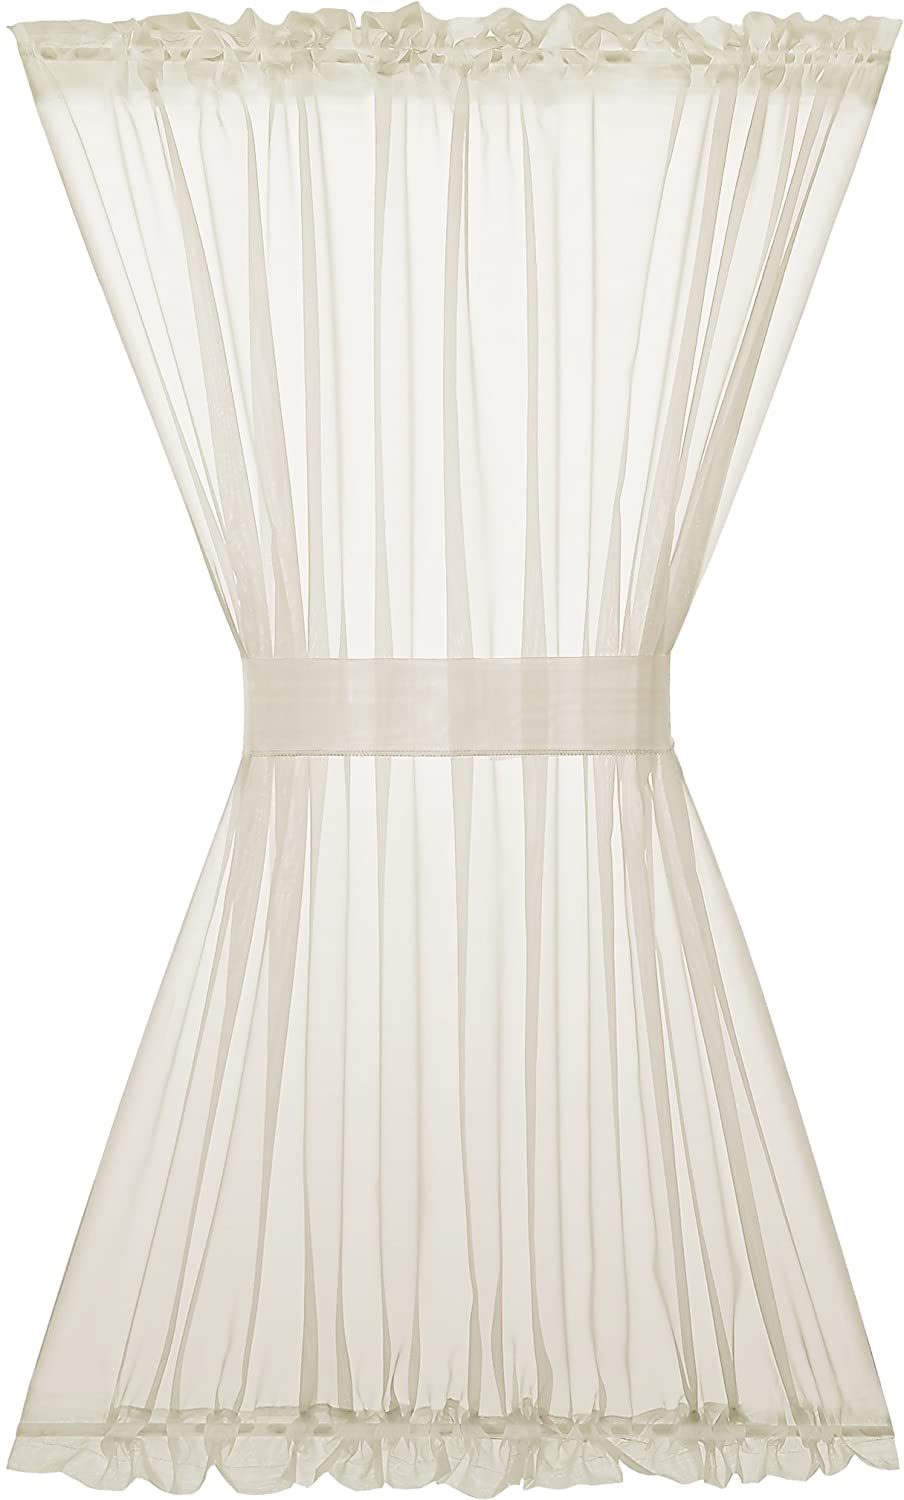 GoodGram Basic Sheer Voile Door Curtain with Tieback for Glass French Doors - Assorted Colors & Sizes (Ivory, Half Door Length)